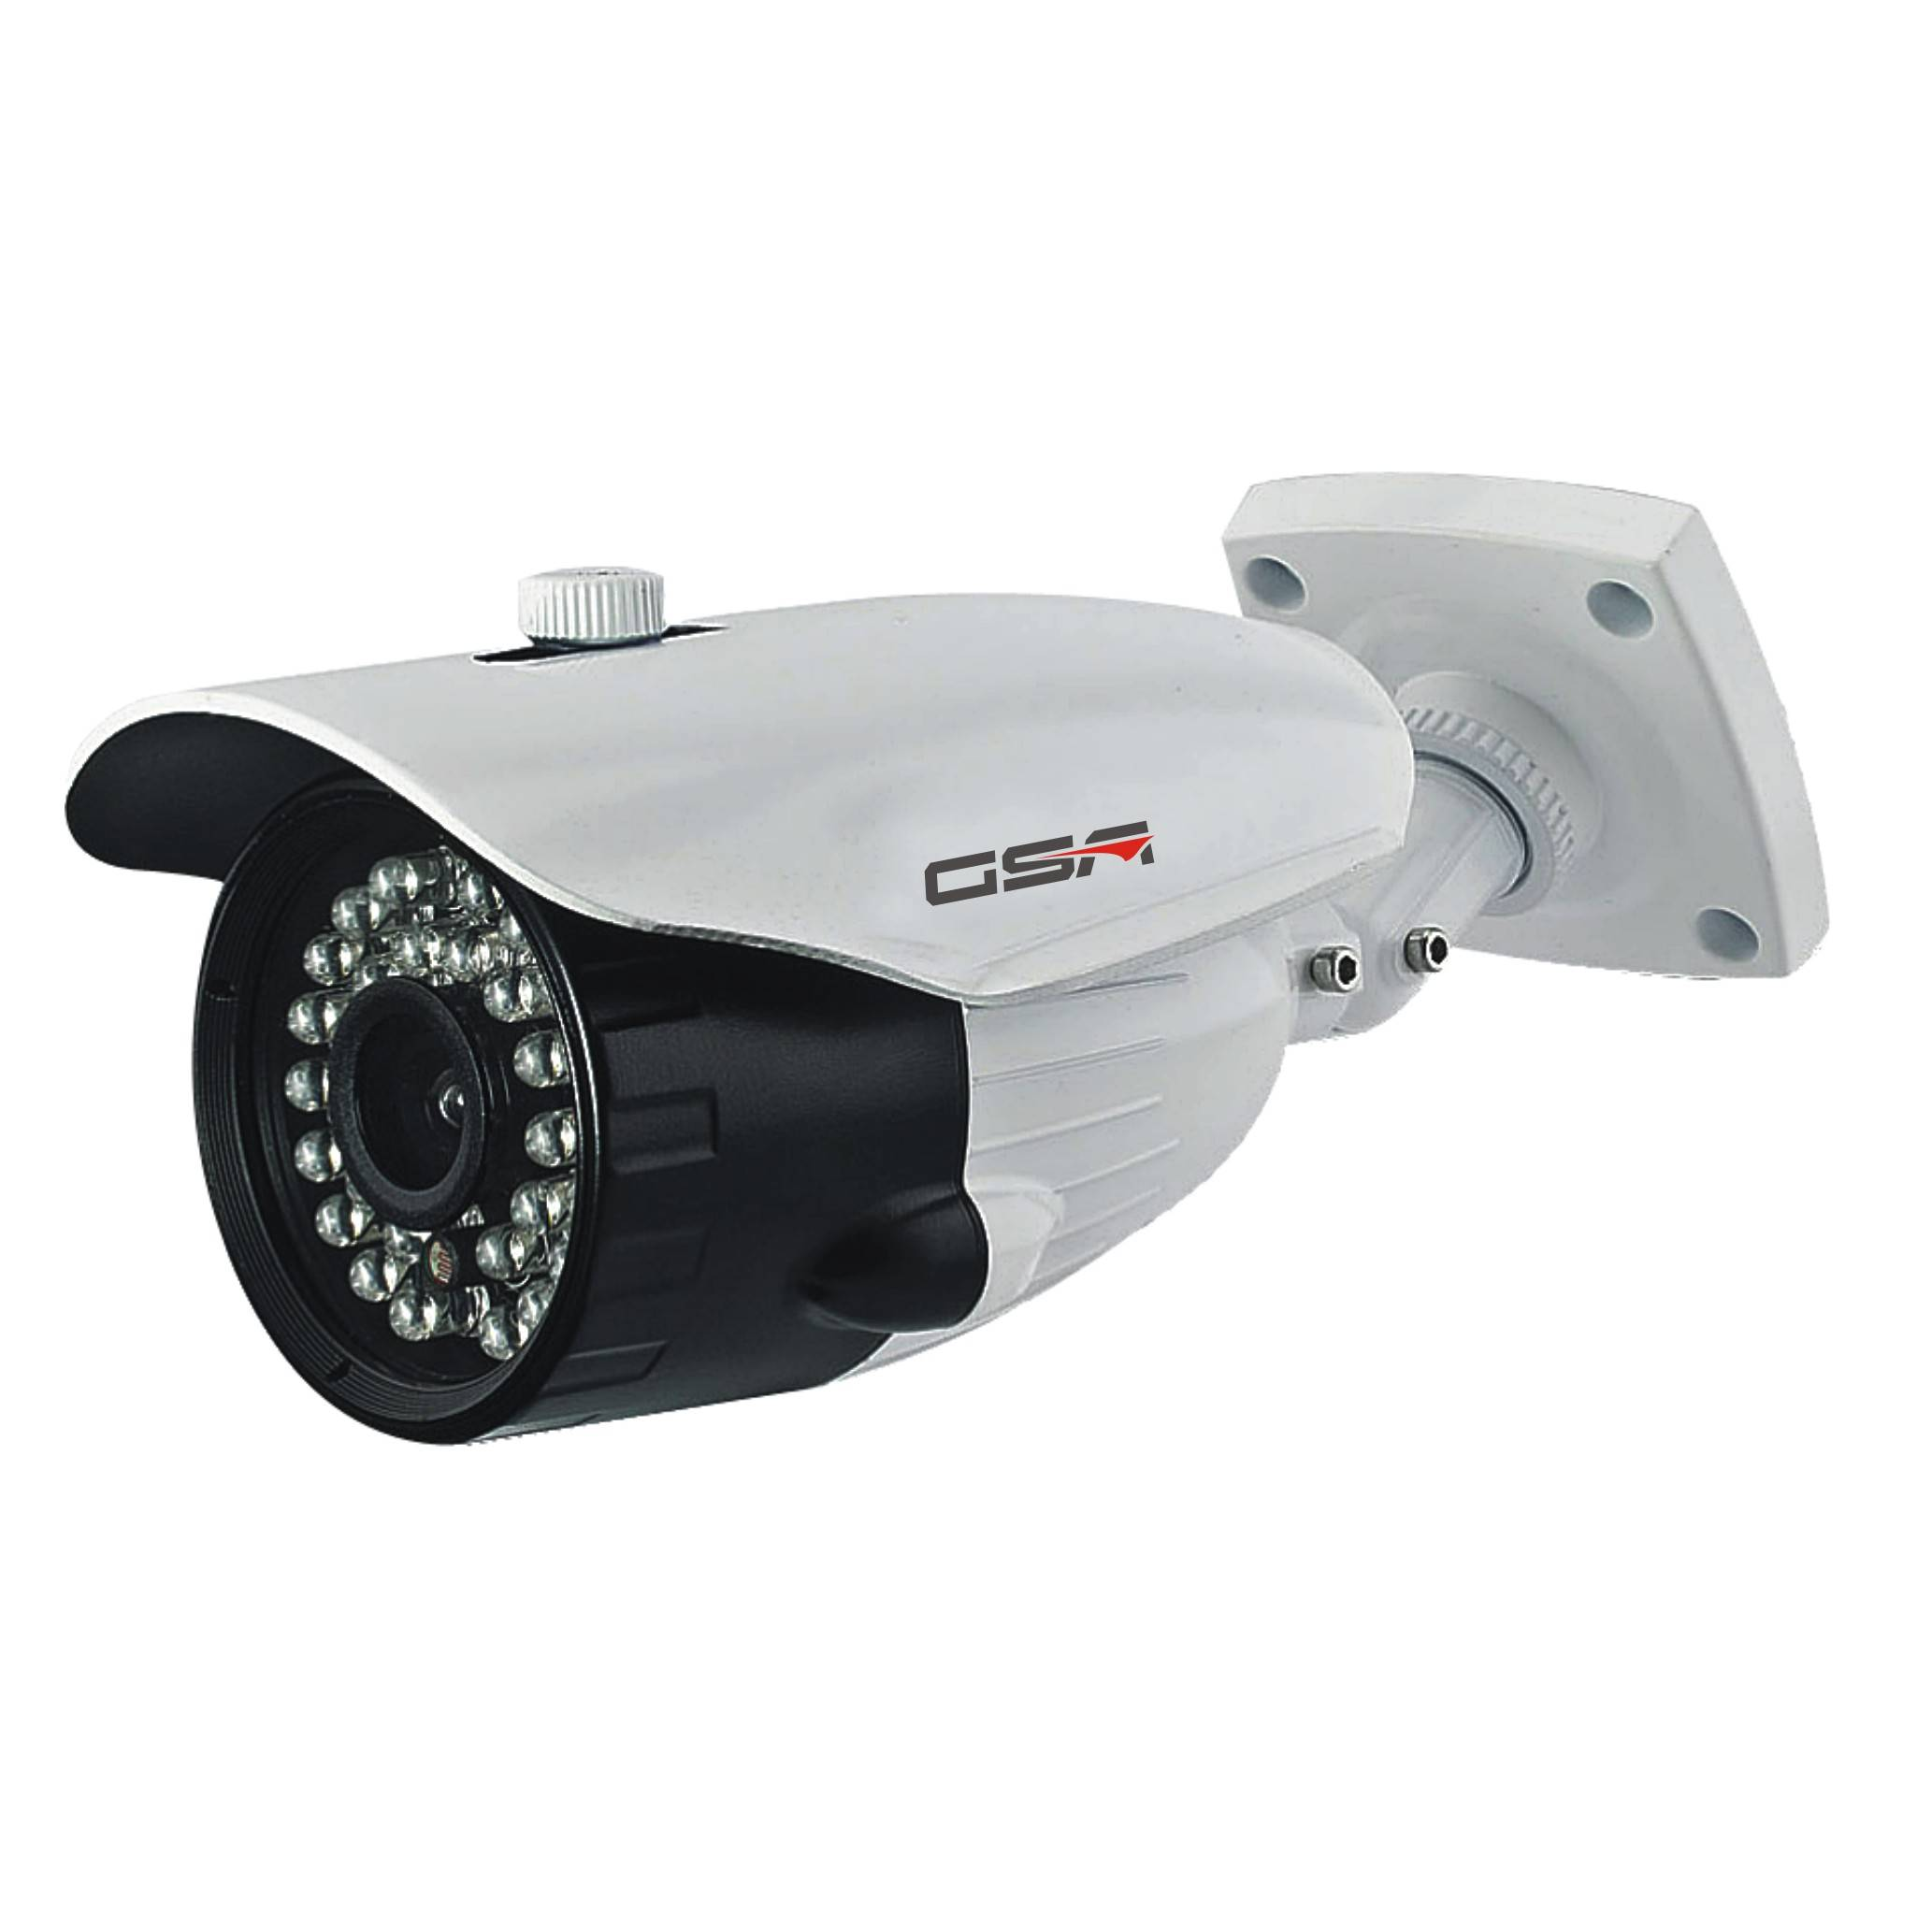 420-700TVL HD Weatherproof IR Camera